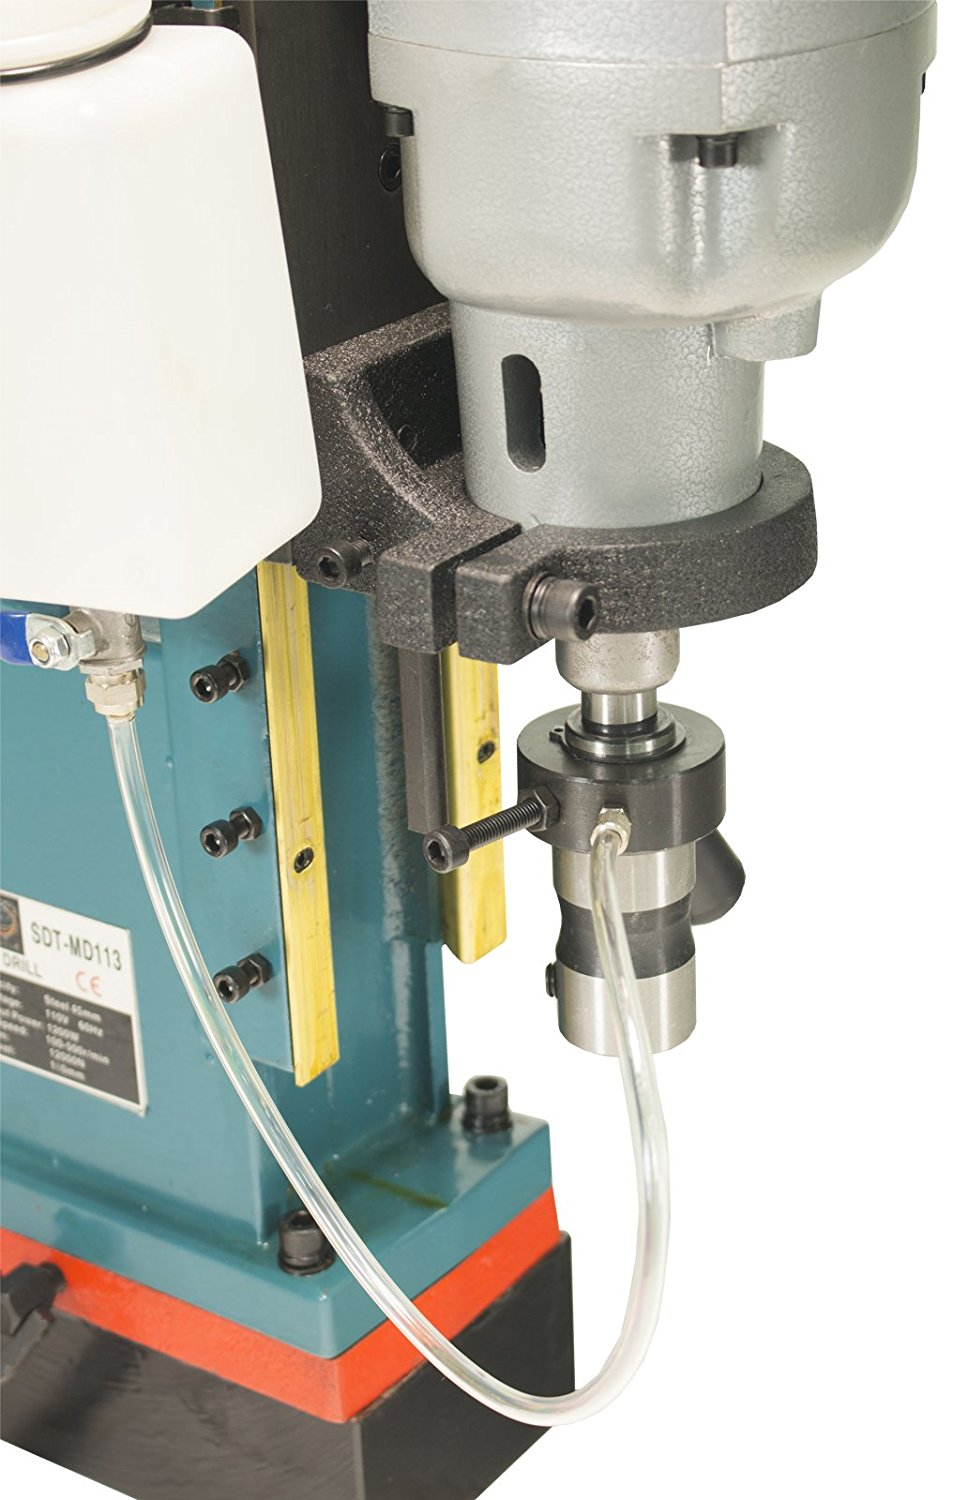 Steel drill press